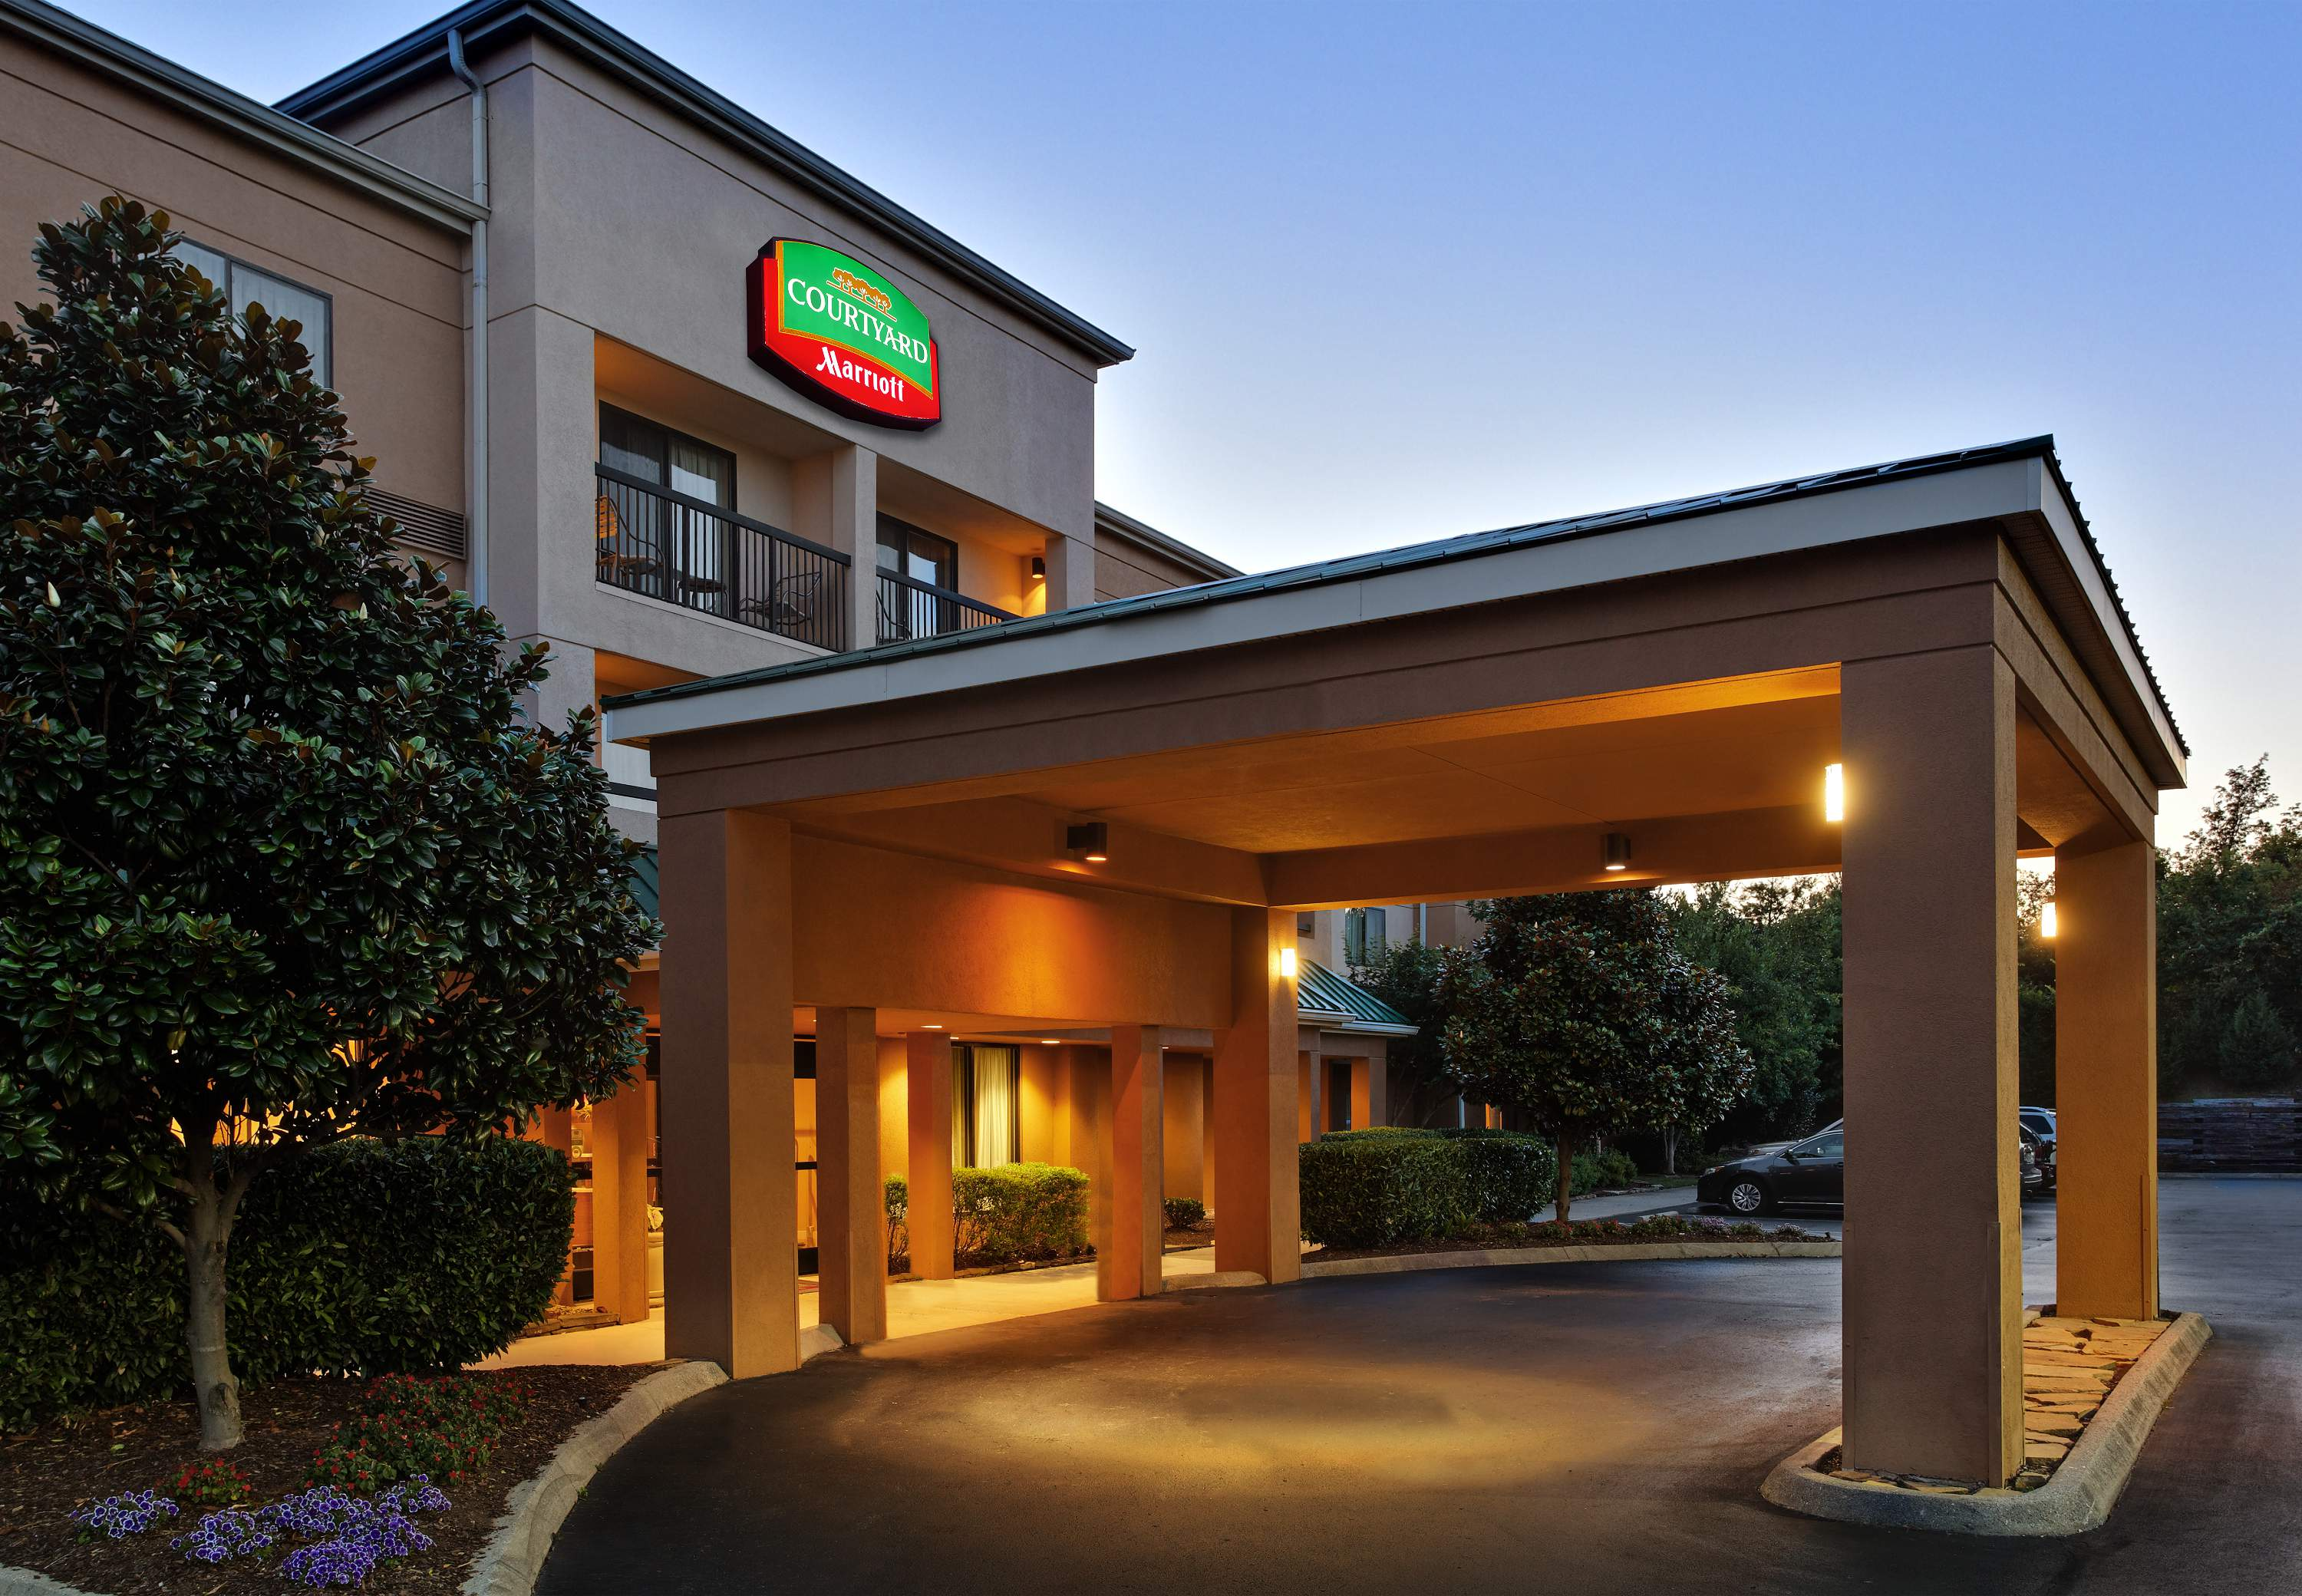 Courtyard by Marriott Knoxville Cedar Bluff image 10